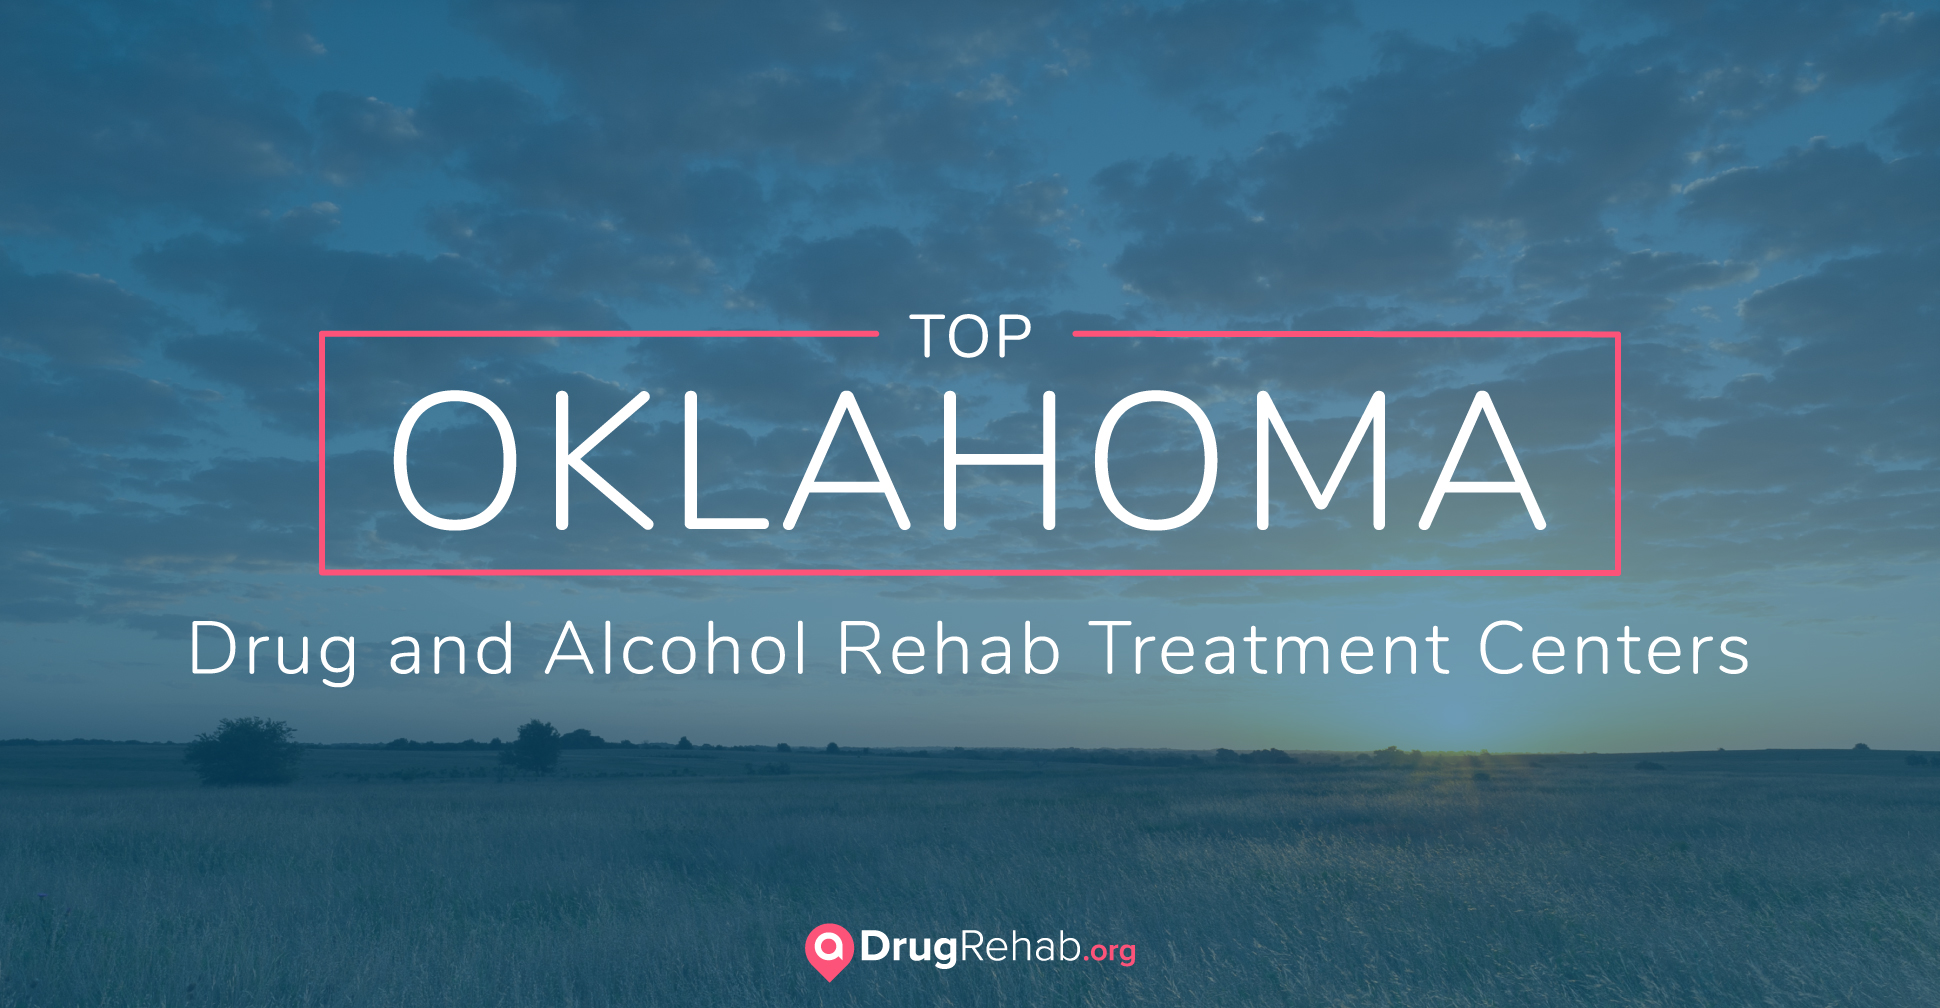 Top 7 Oklahoma Drug and Alcohol Rehab Treatment Centers